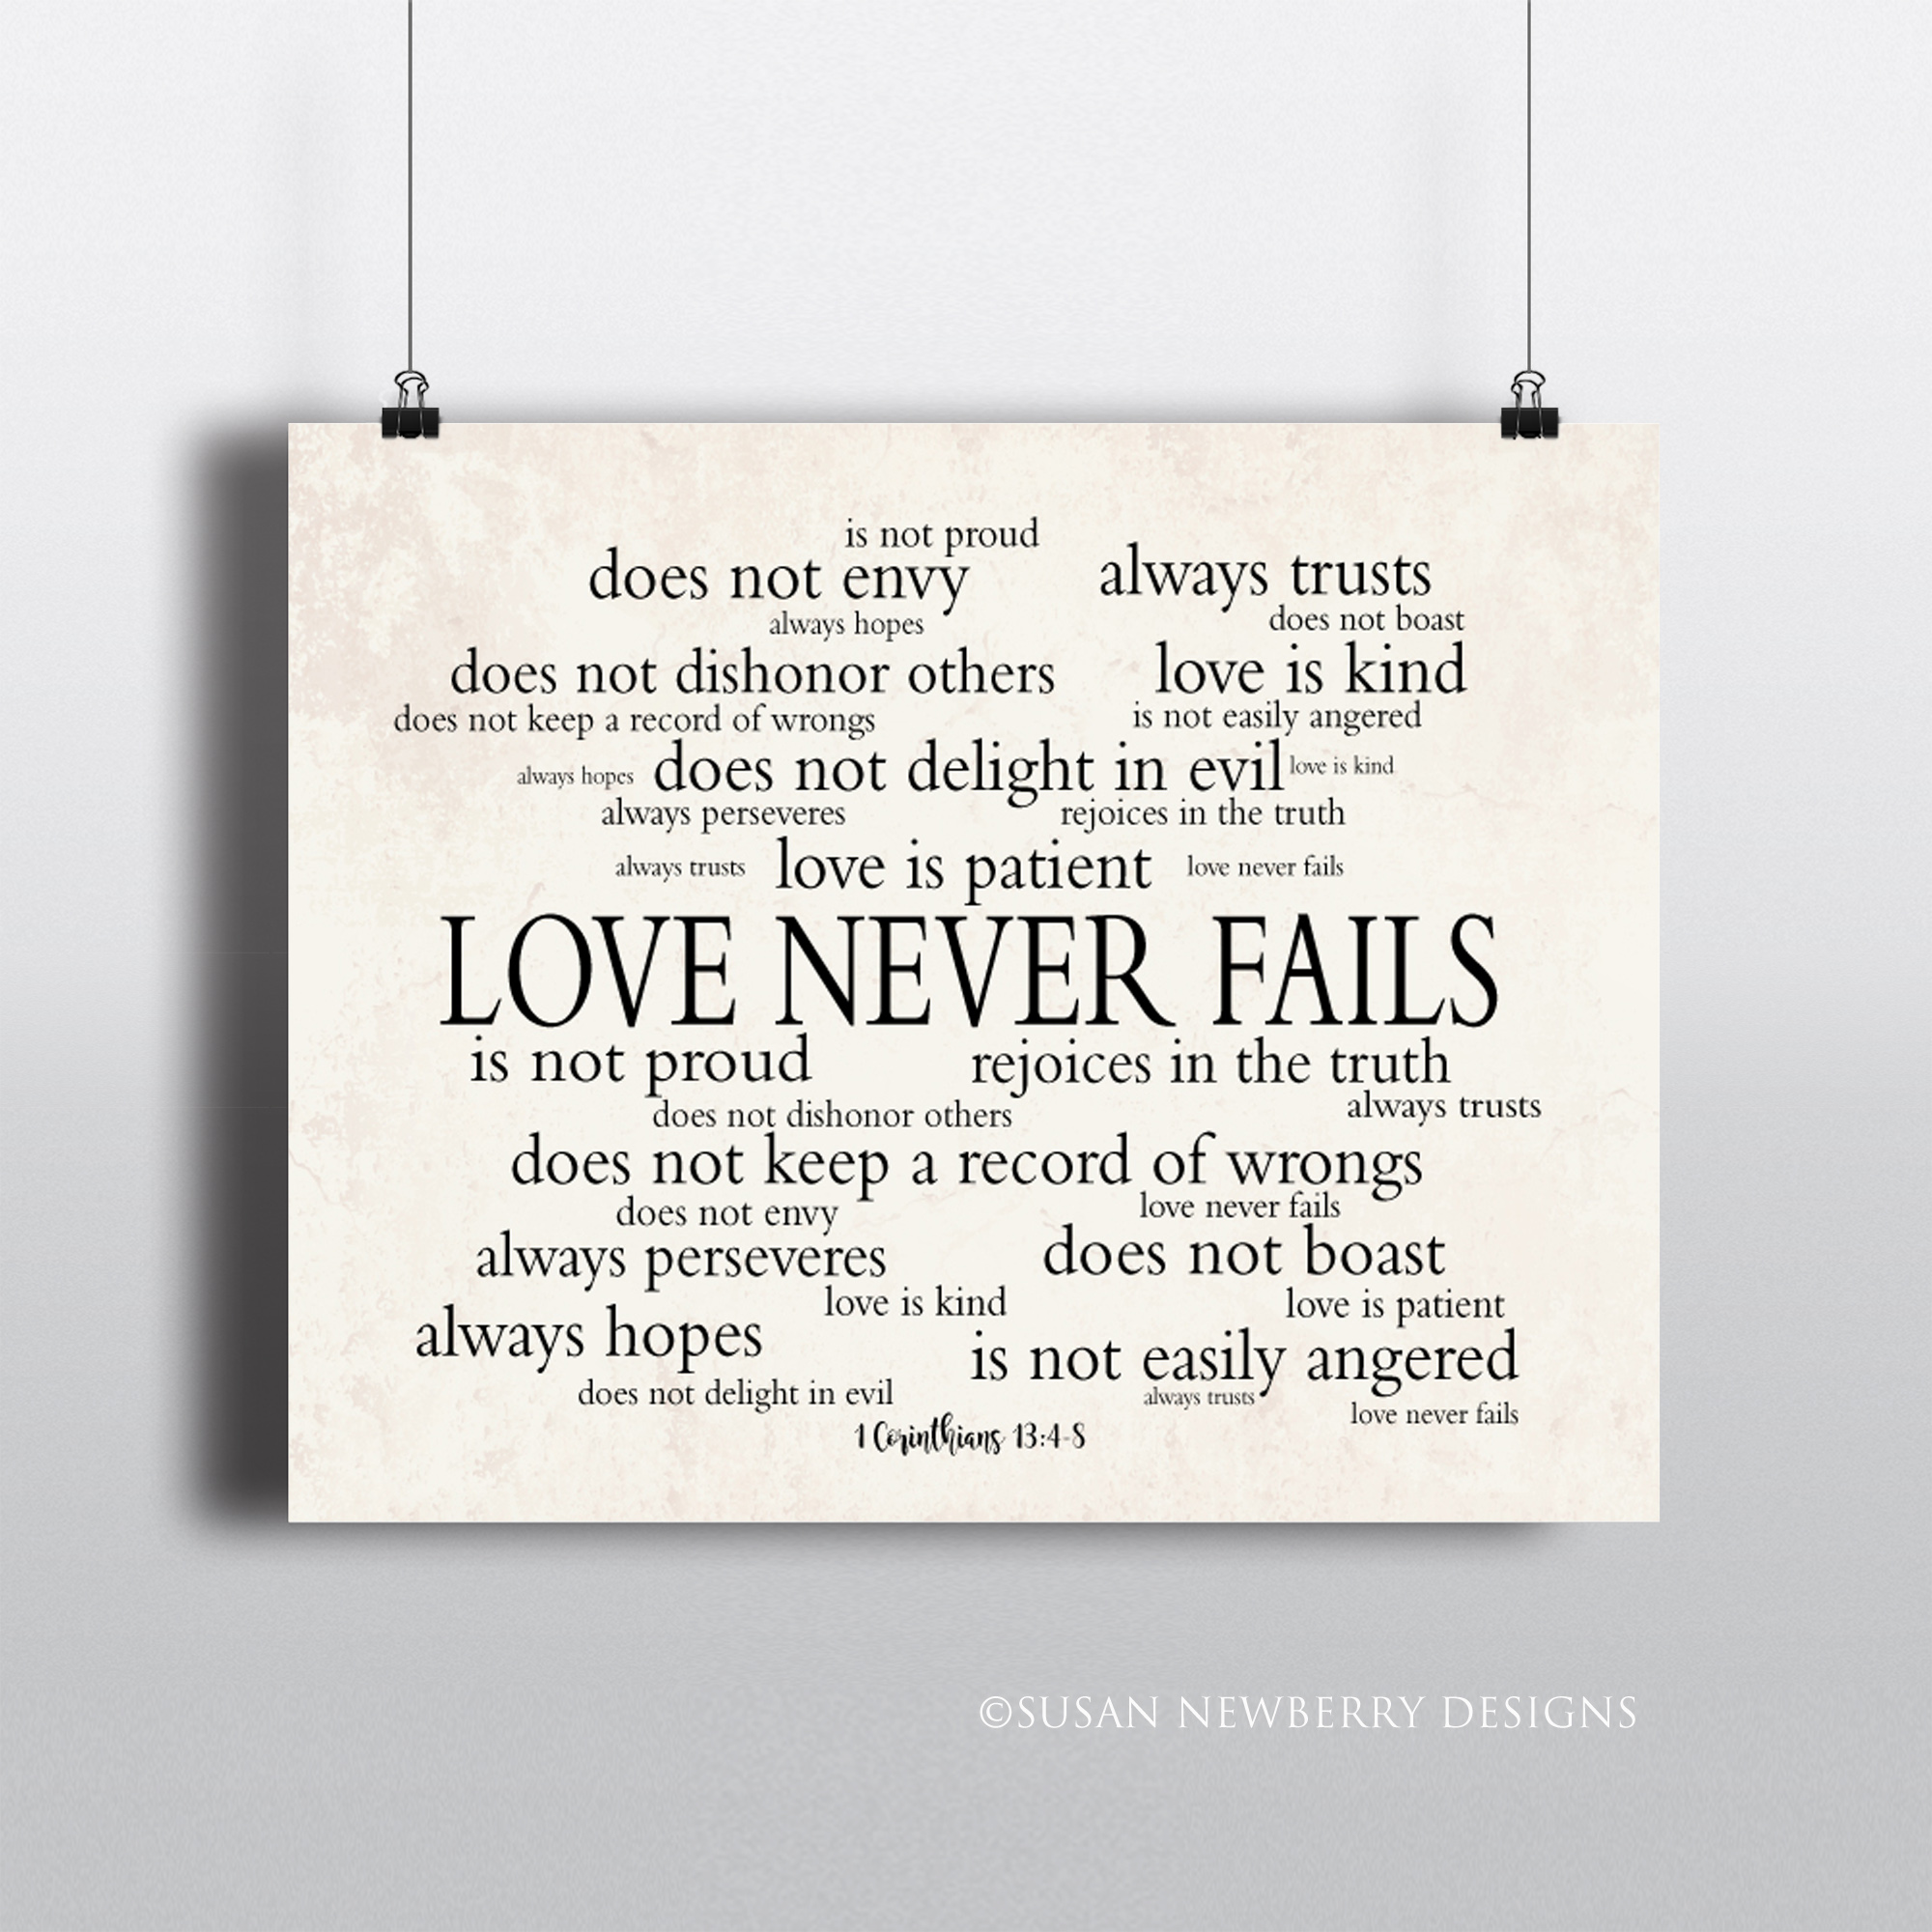 Love never fails 4.jpg